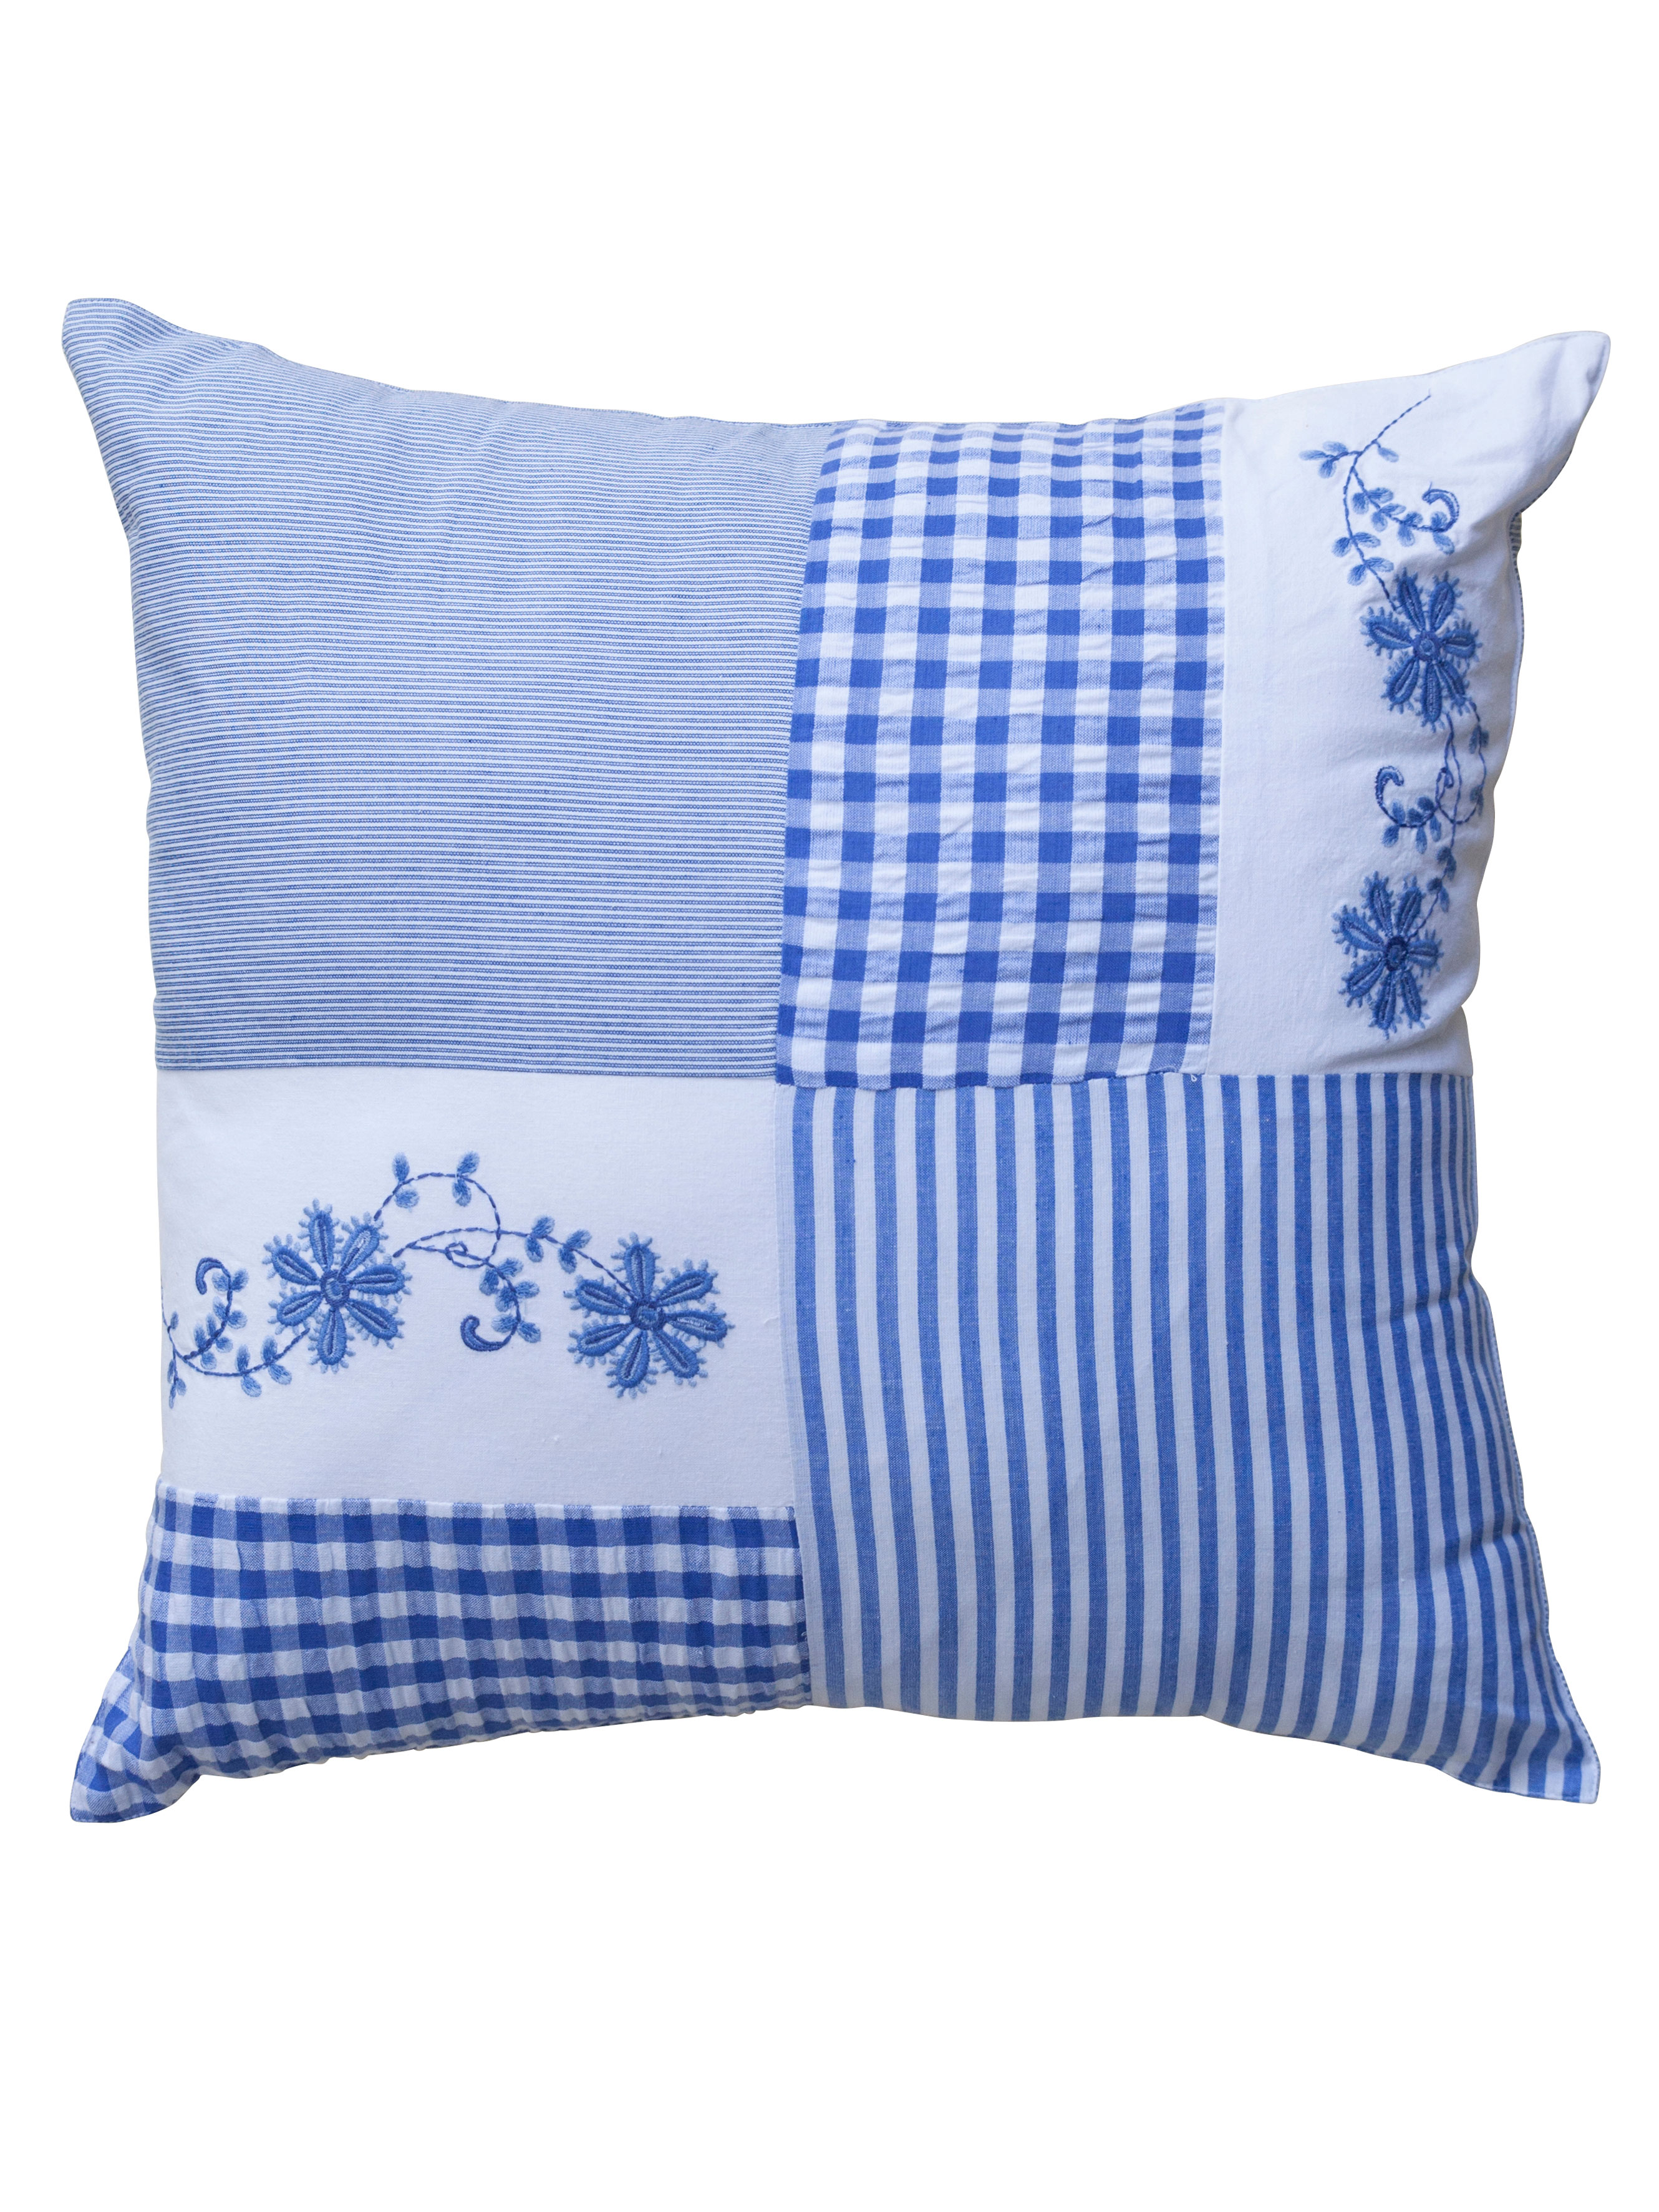 Picnic Patchwork Cushion Cover Your Home Cushions